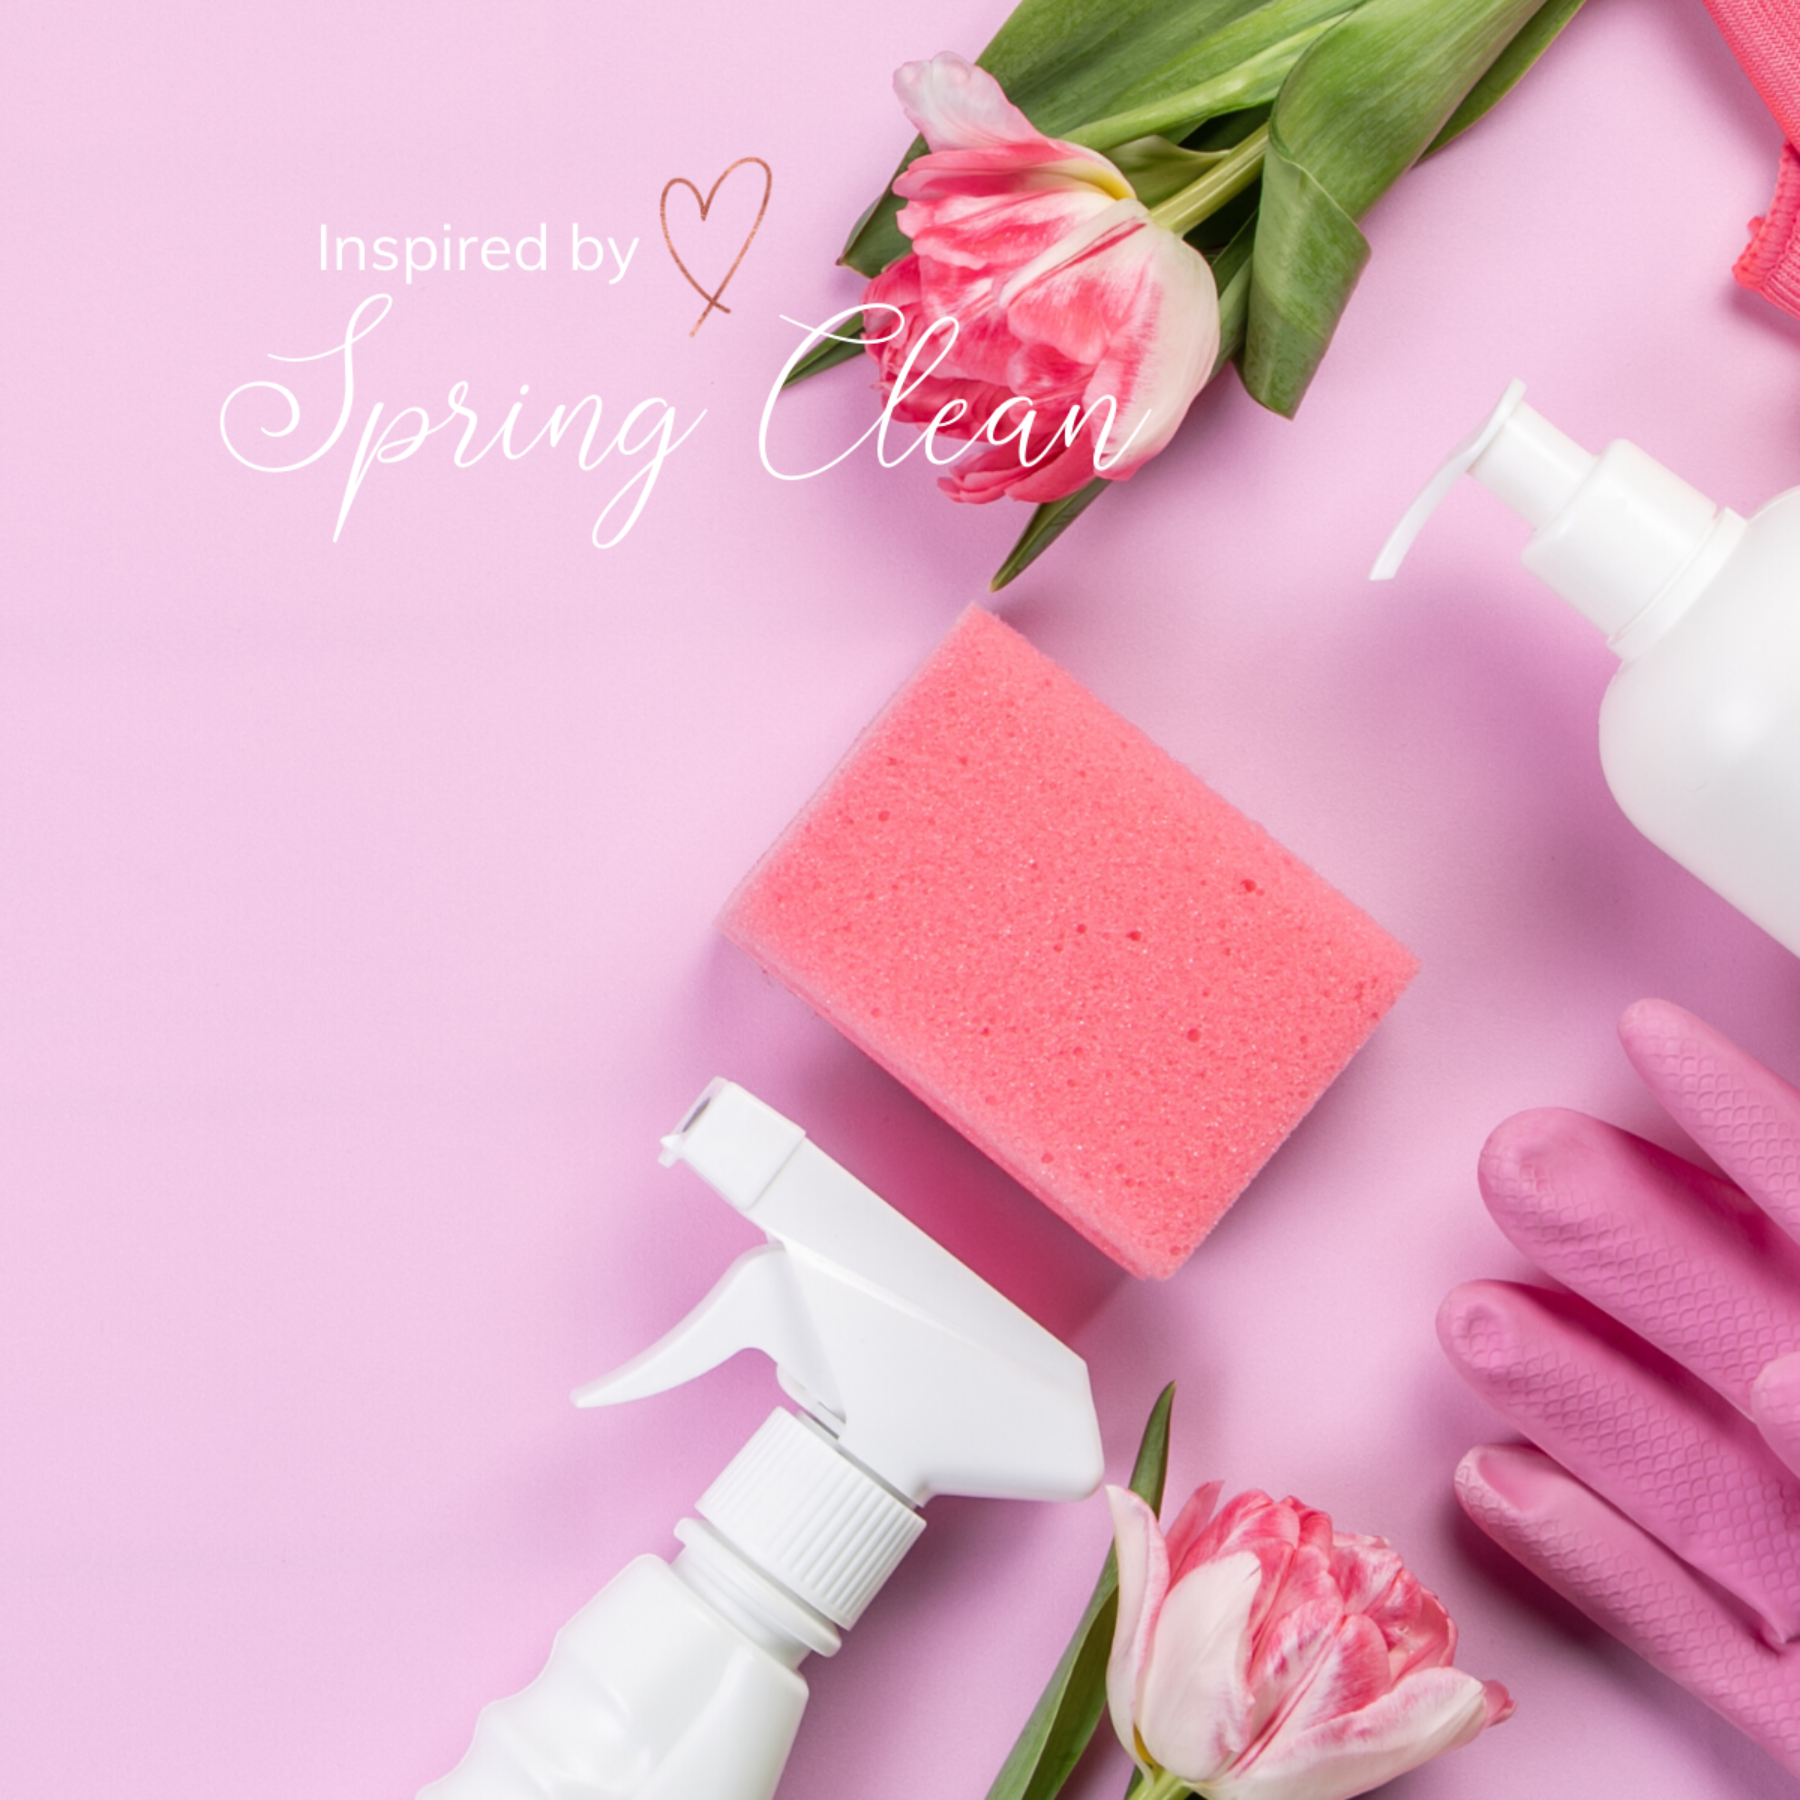 Spring Clean Collection Wax Melts